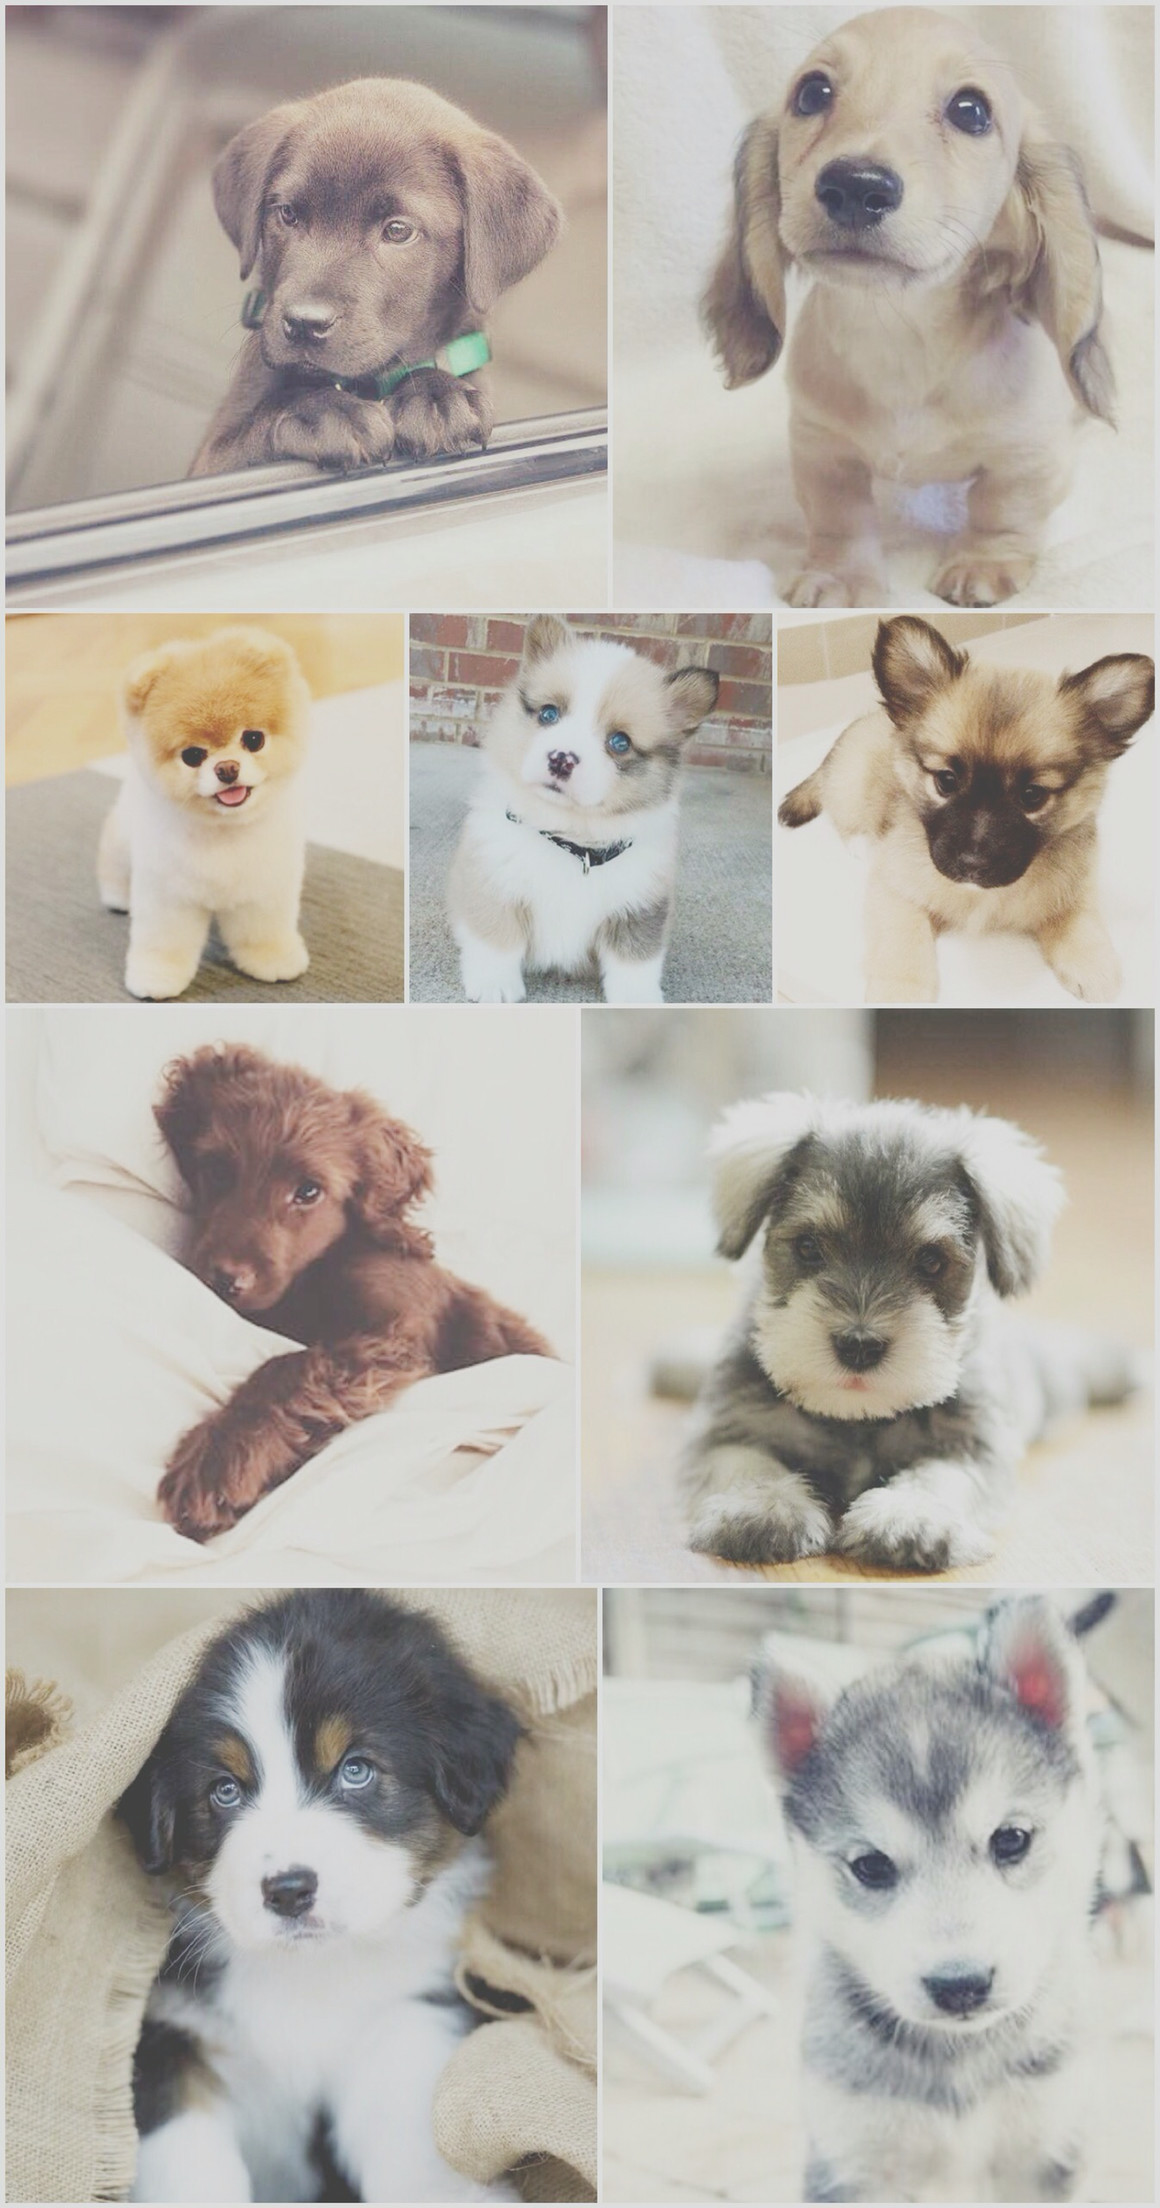 Cute Dogs And Puppies Wallpaper Wallpapertag